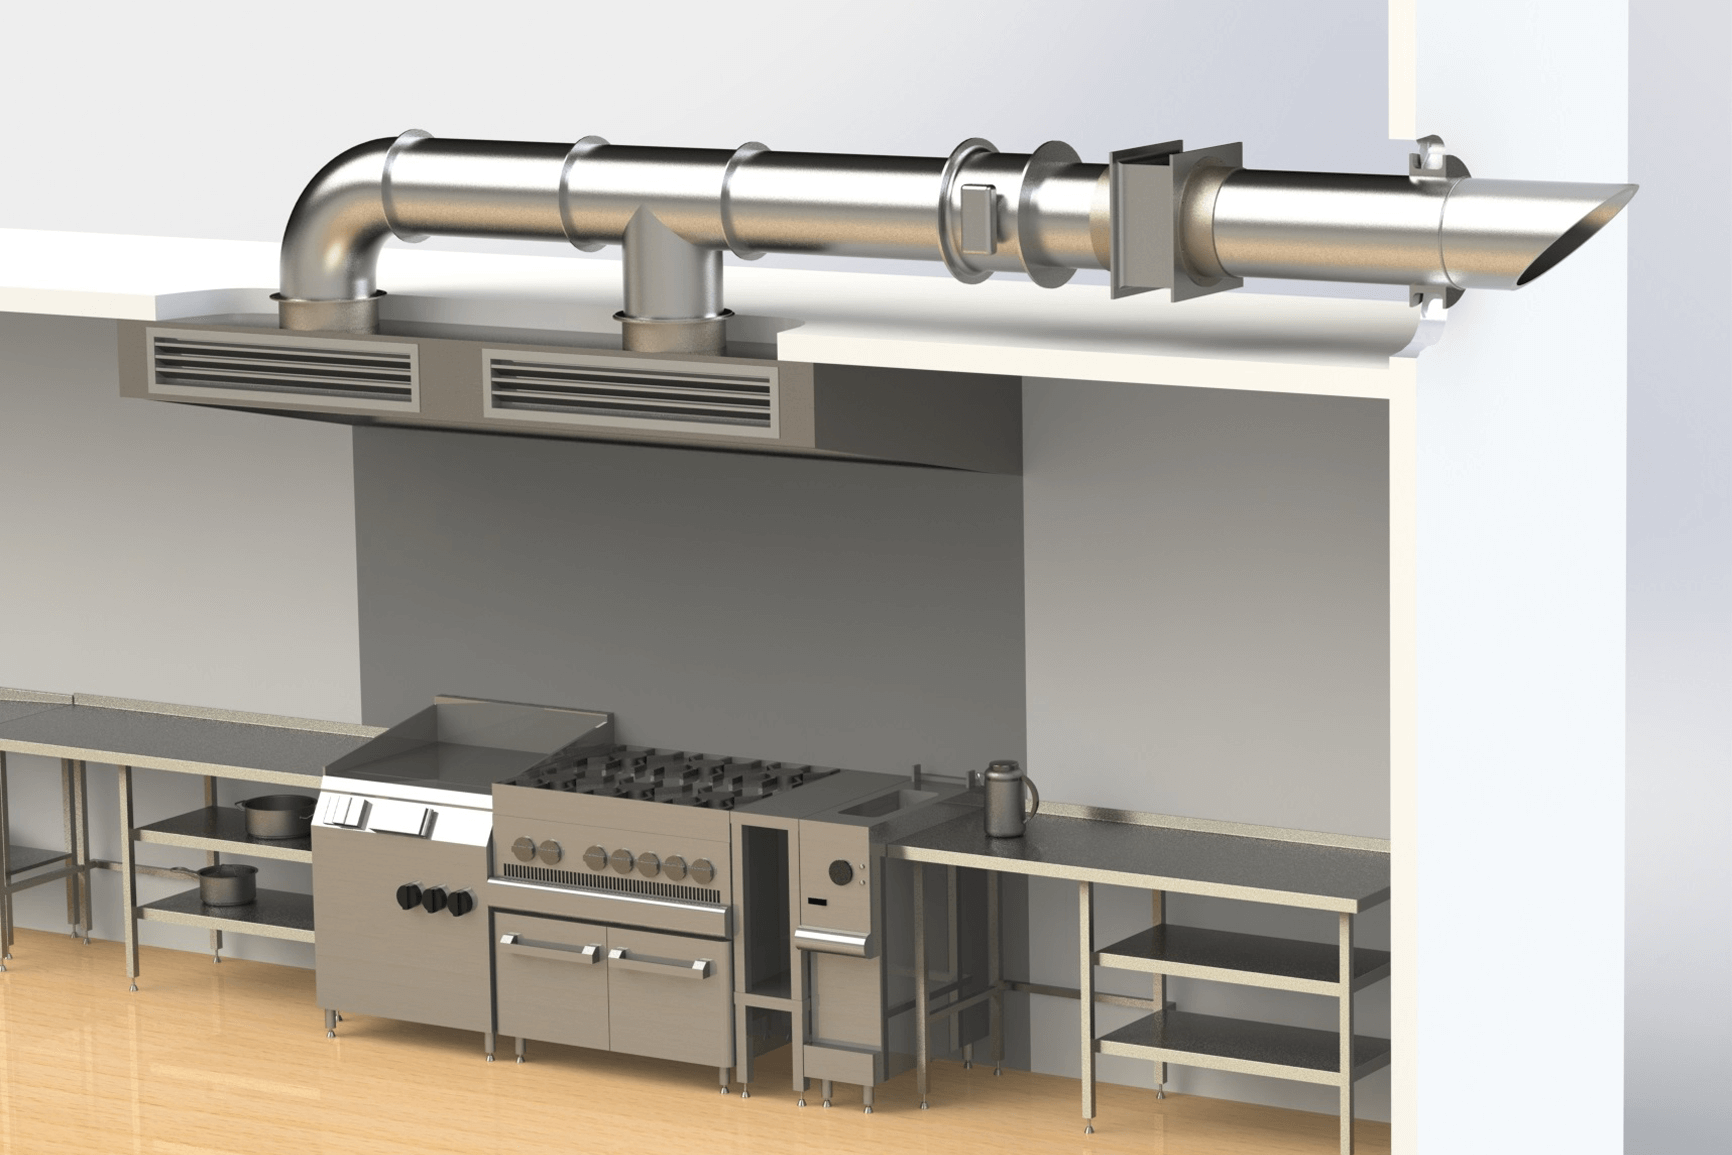 Kitchen Vent Exhaust Hoods Grease Extraction Devices And Make Up Air For Fire